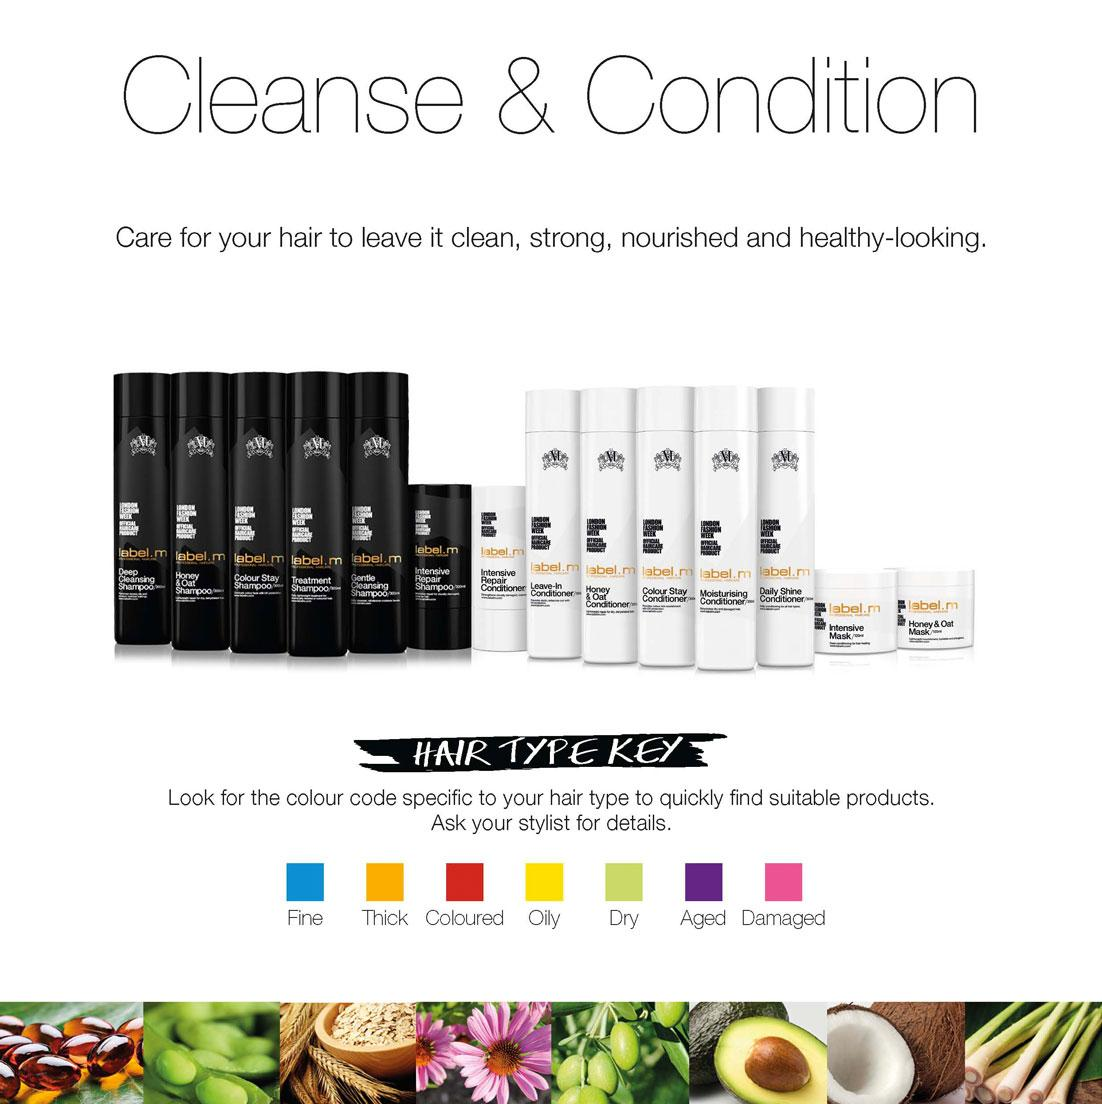 587.9-label-m-cleanse-and-condition-1-pg-6.jpg